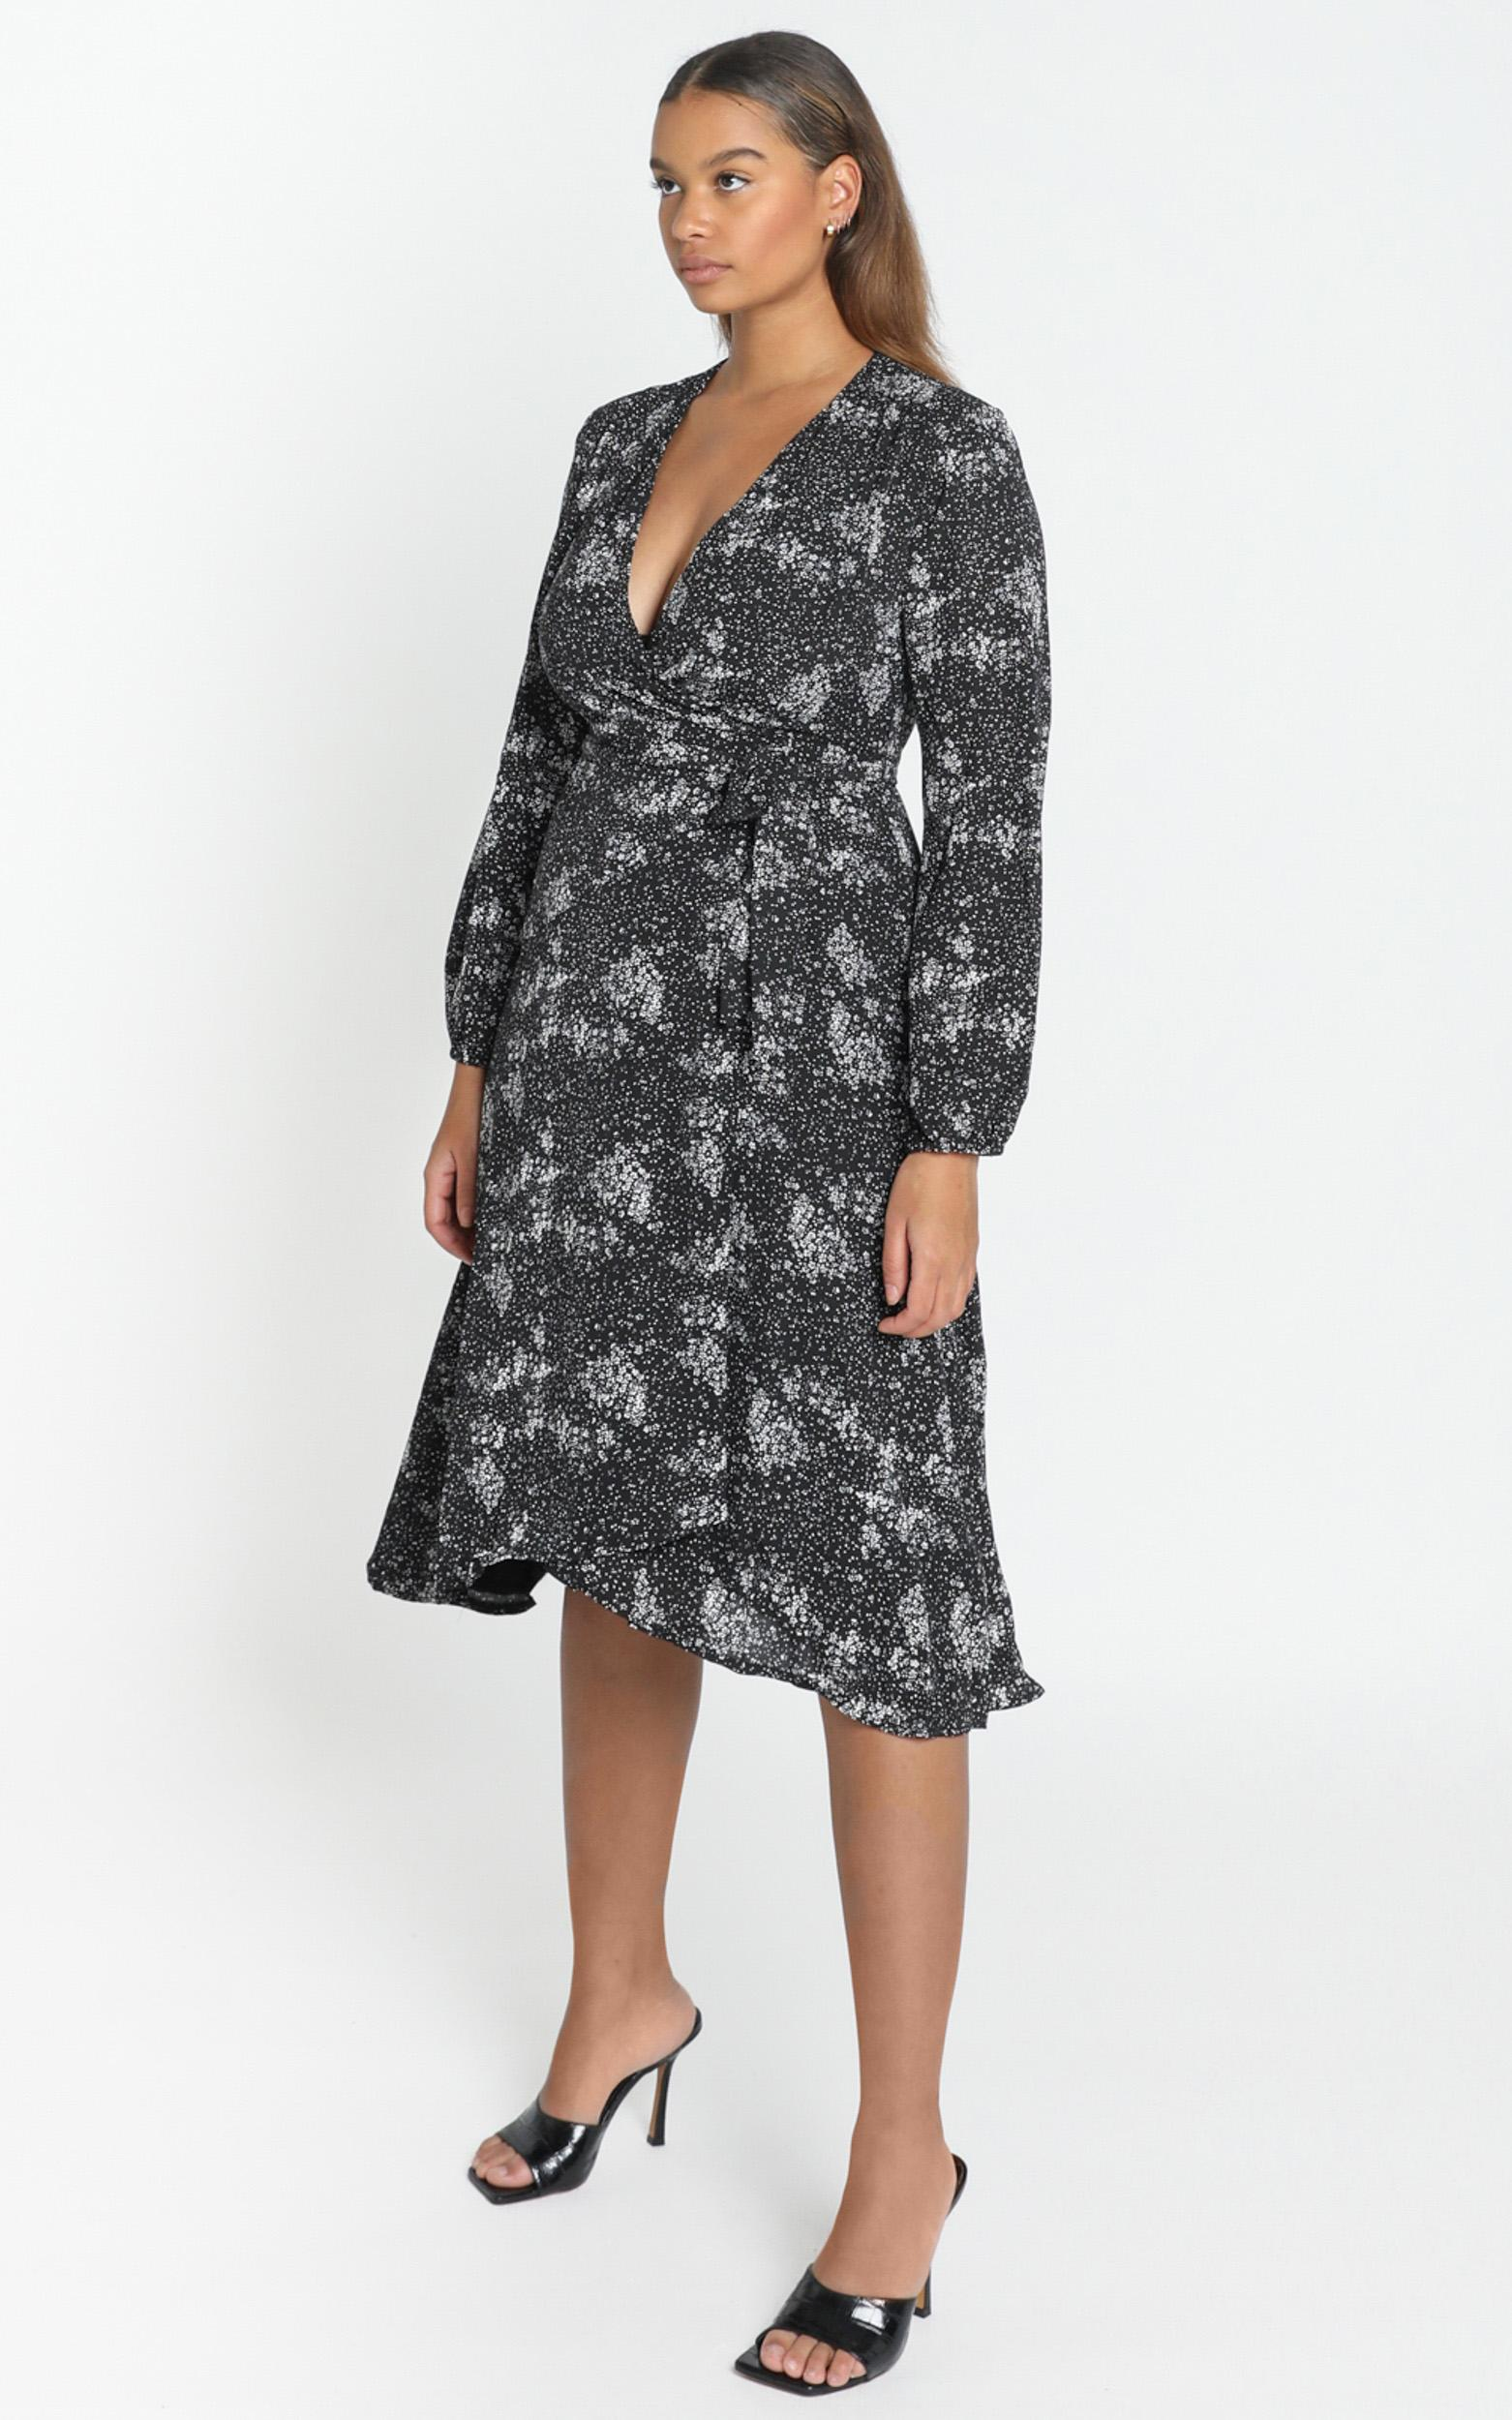 Tuscan Fields Dress in black floral - 4 (XXS), Black, hi-res image number null